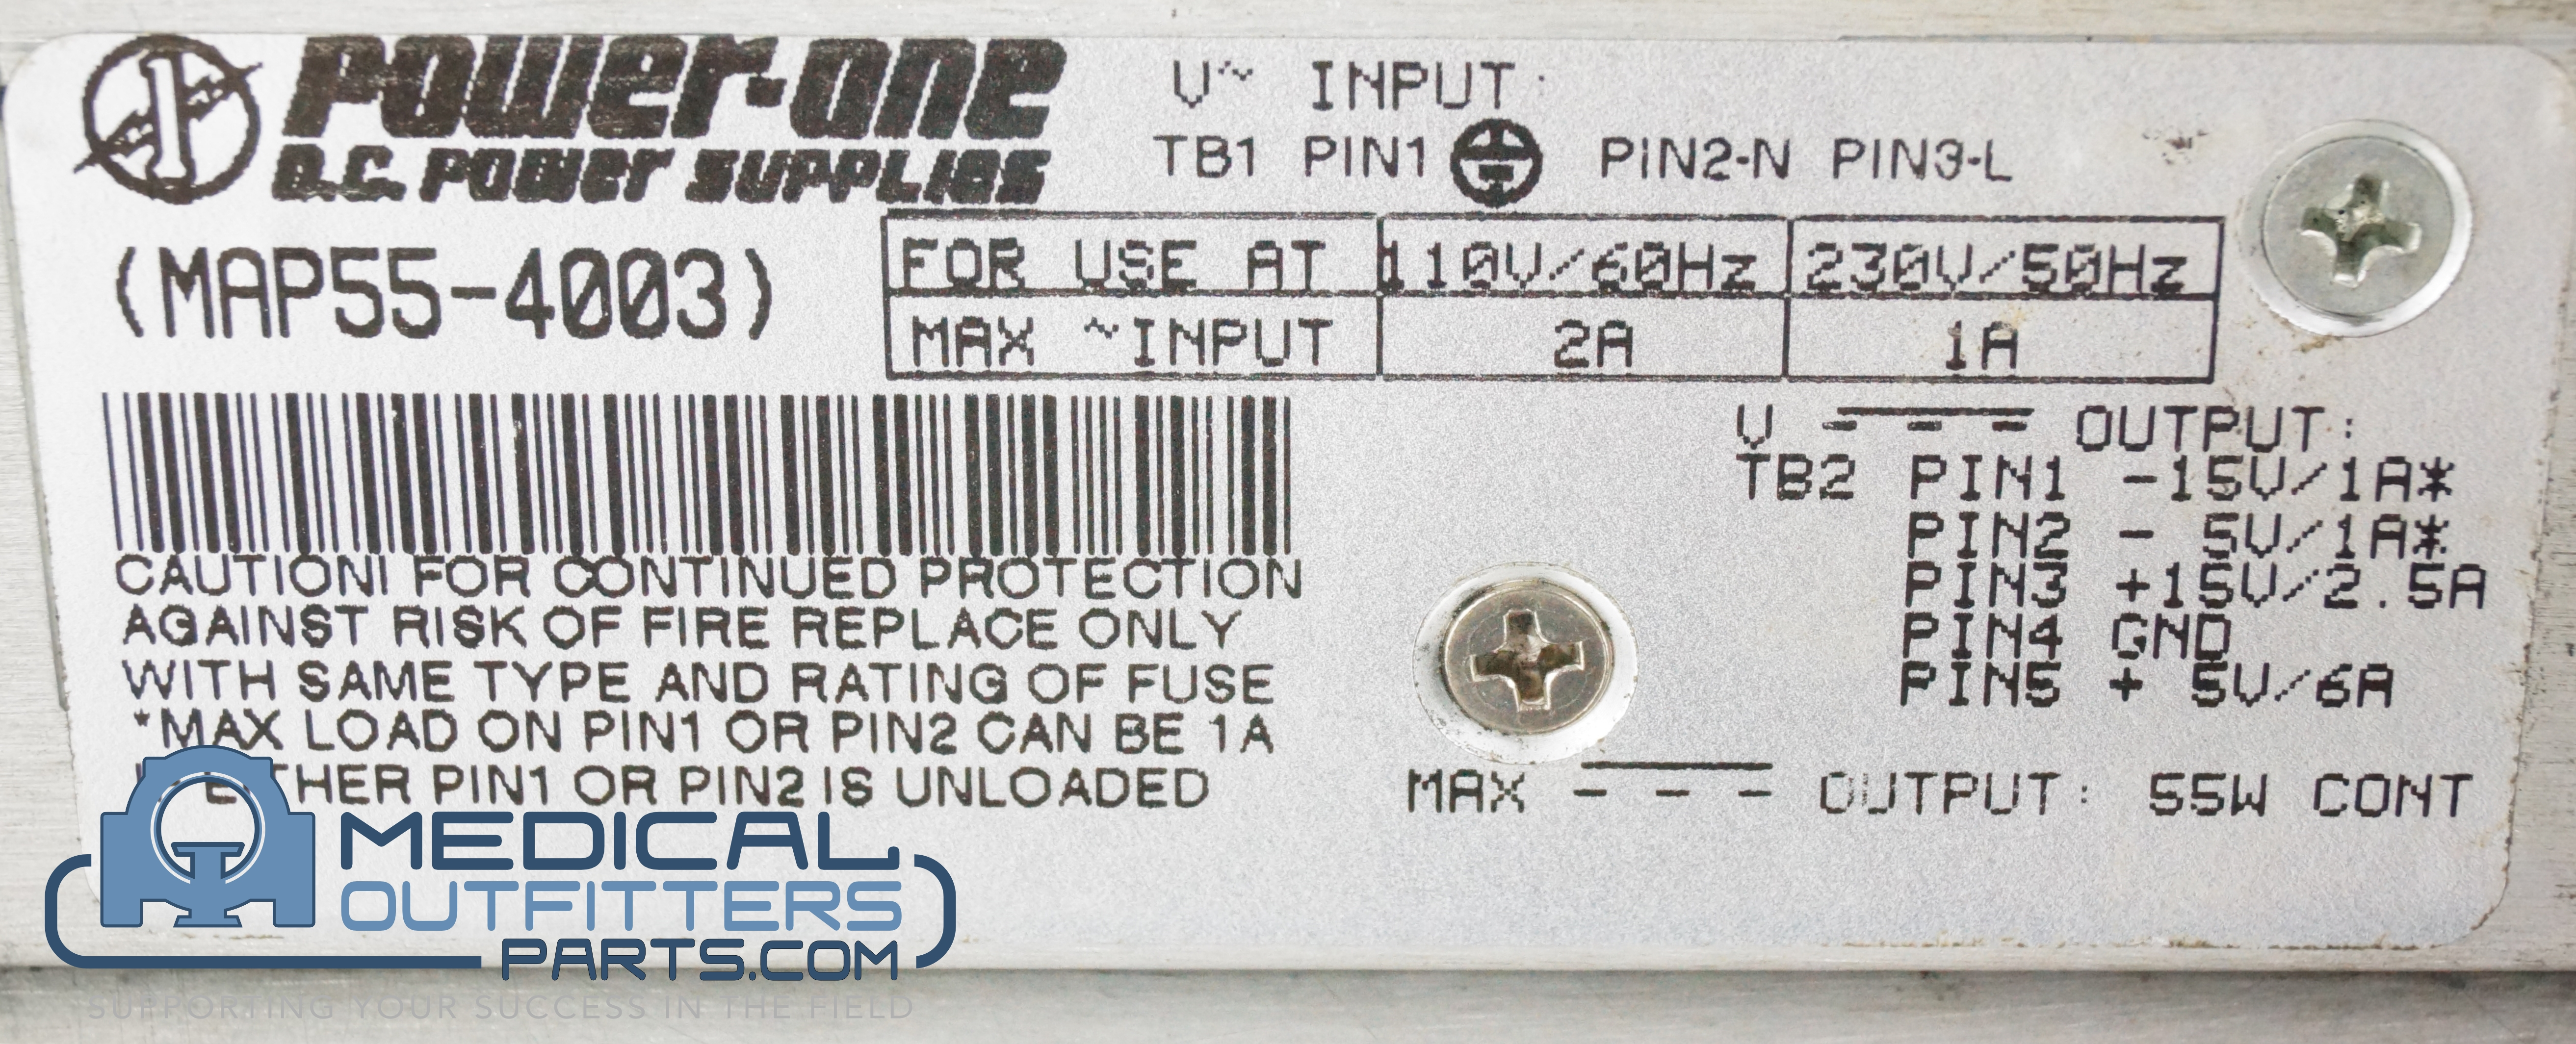 Power One AC/DC Power Supply Quad-OUT, PN MAP55-4003